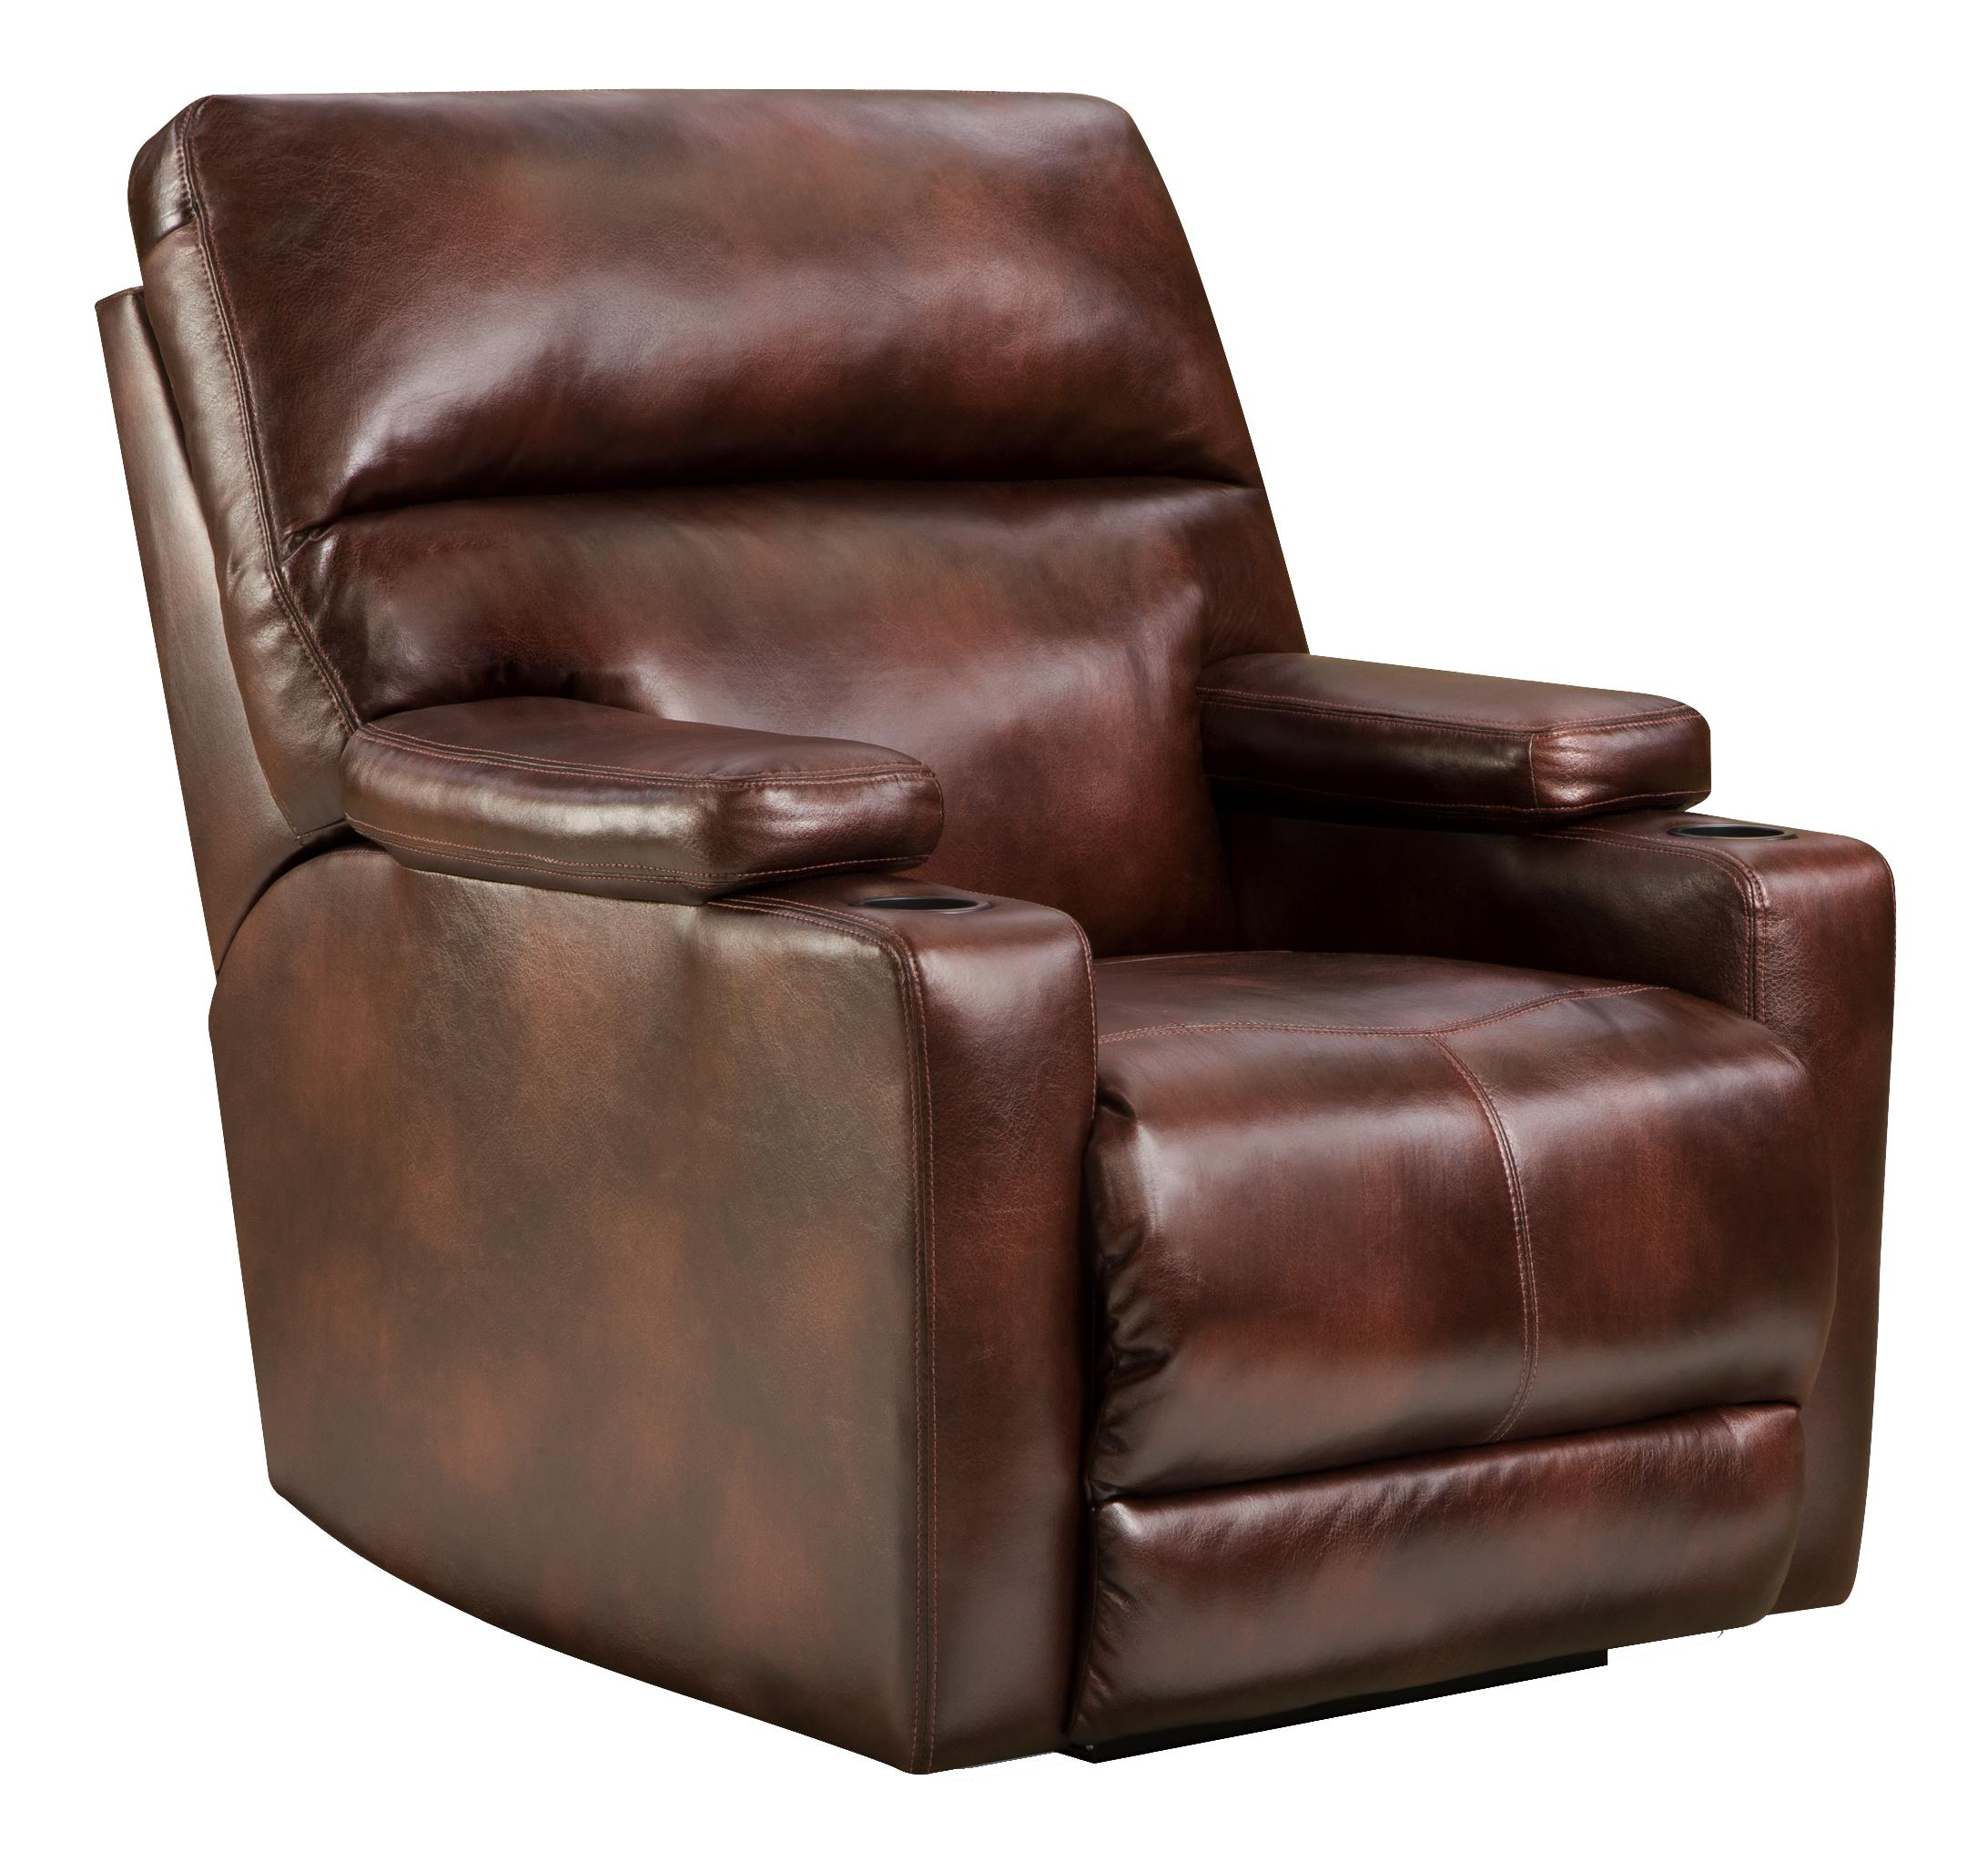 Lay Flat Recliner With Theater Seating Option By Southern